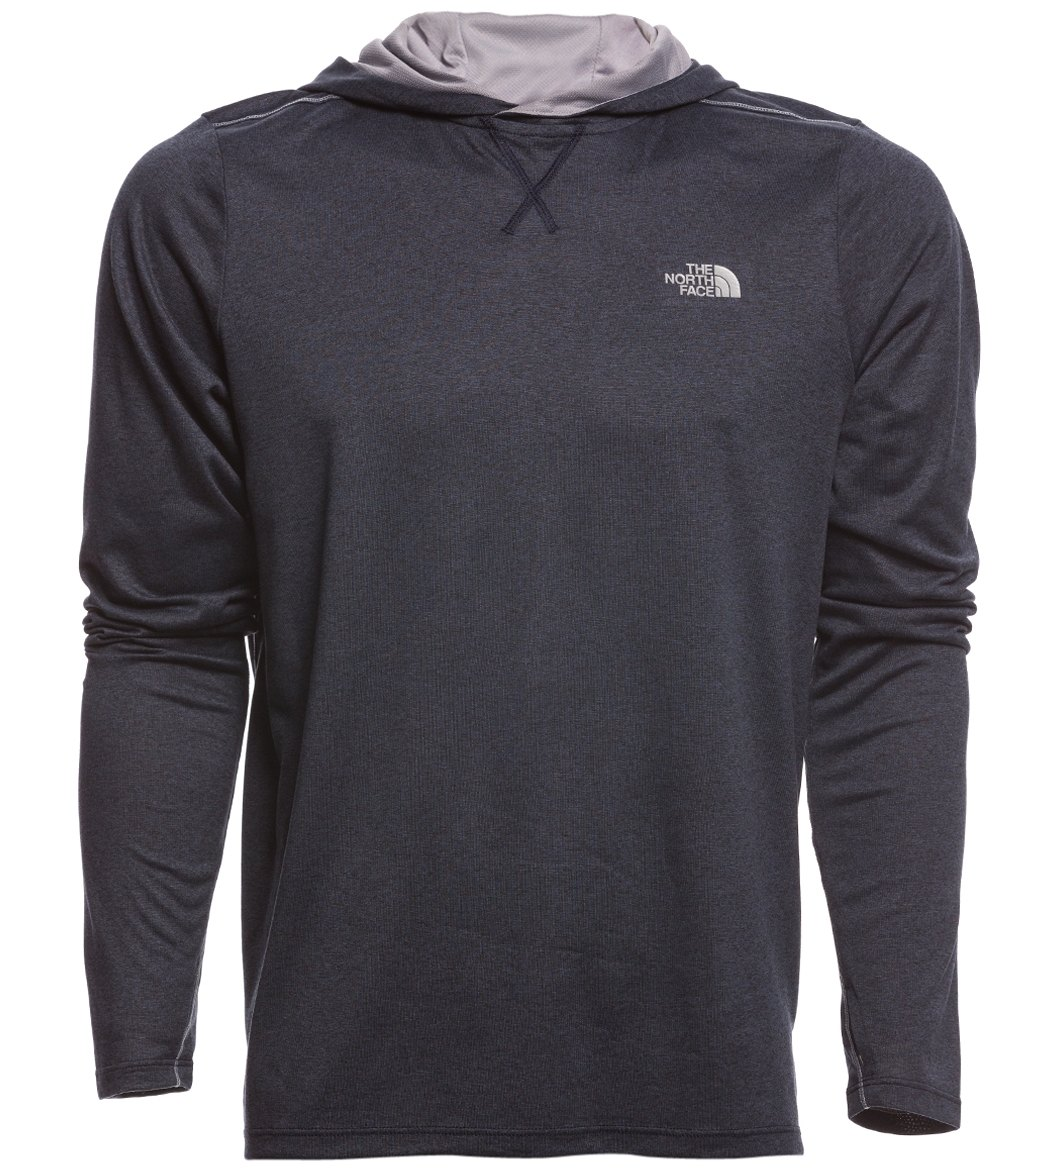 3559cdc07 The North Face Men's Reactor Hoodie